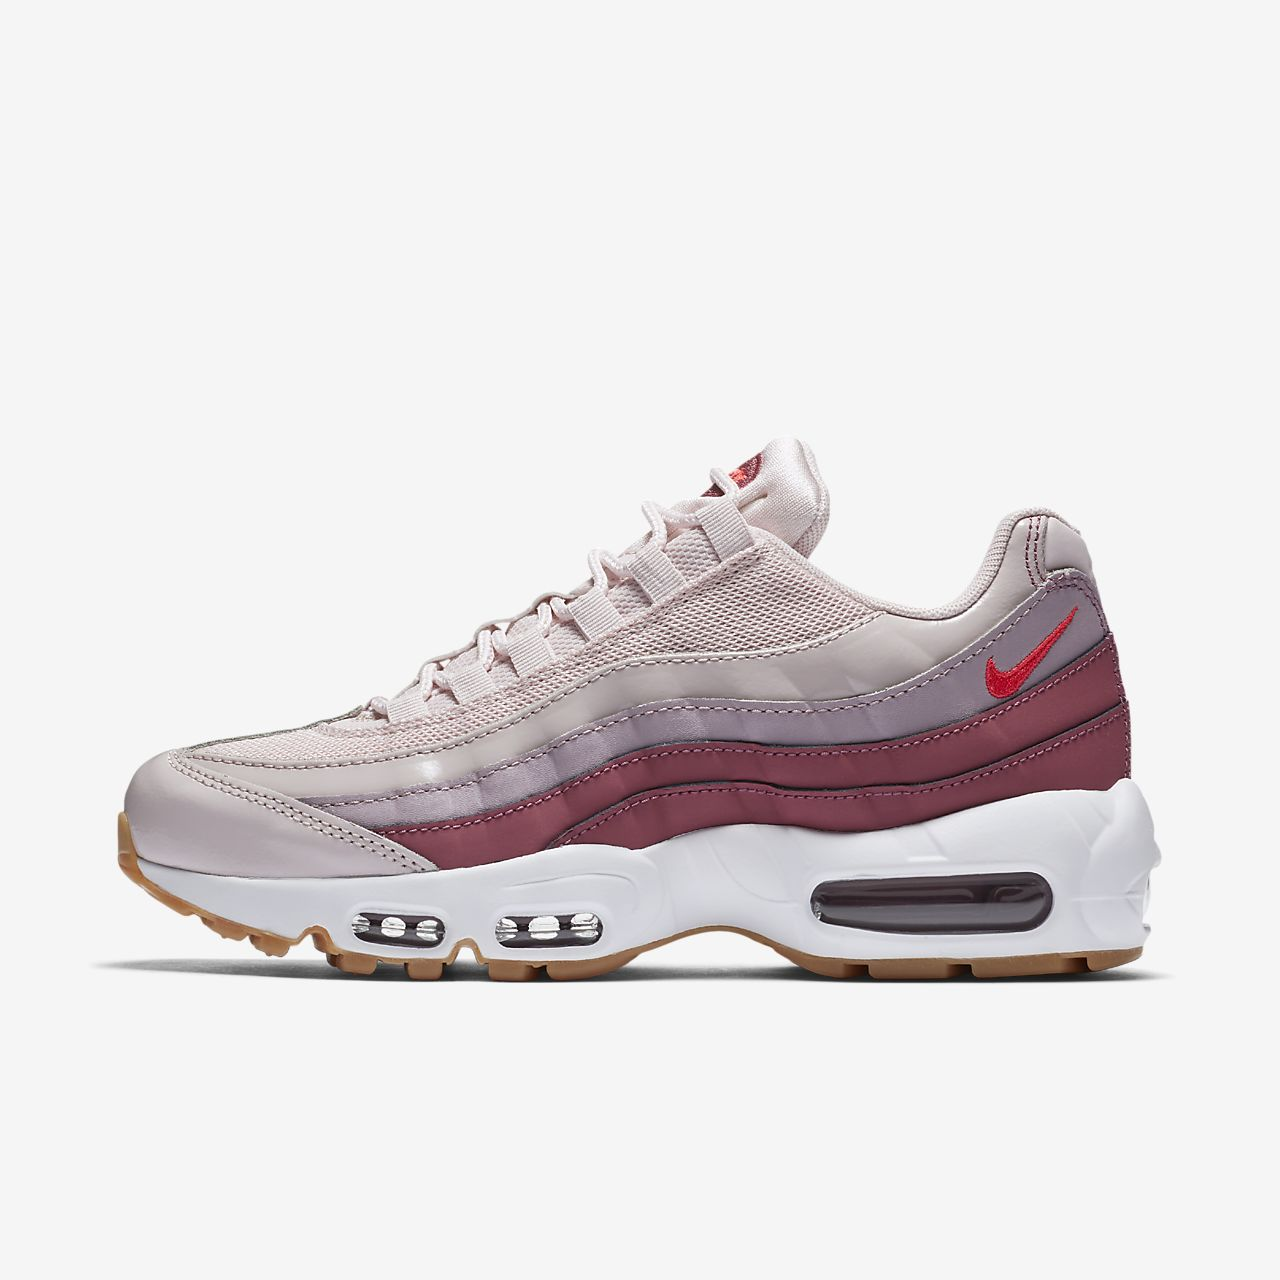 save off 231d2 8fd3b air max blanche femme 95